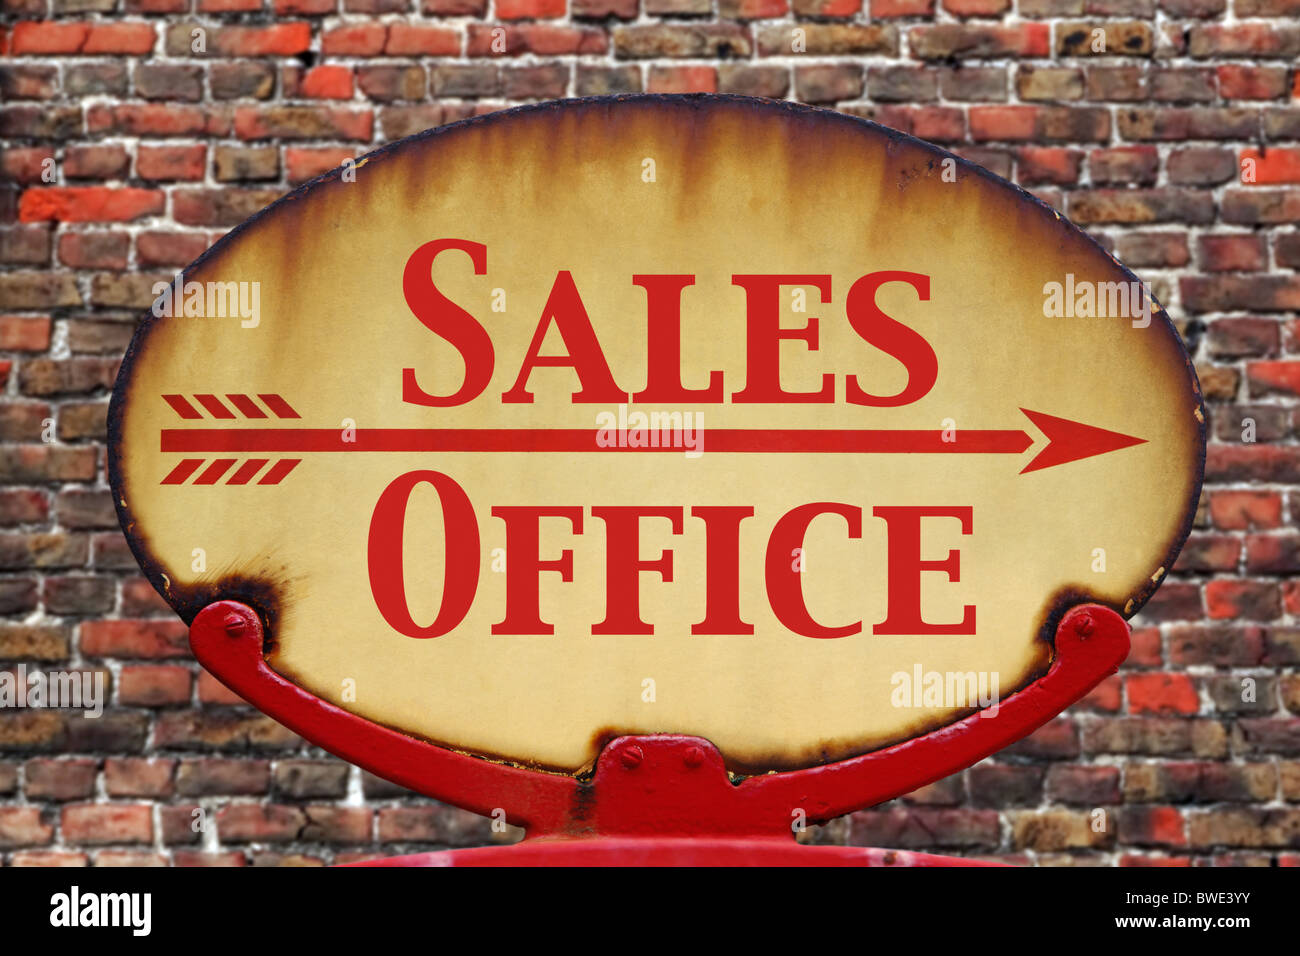 A rusty old retro arrow sign with the text Sales Office - Stock Image